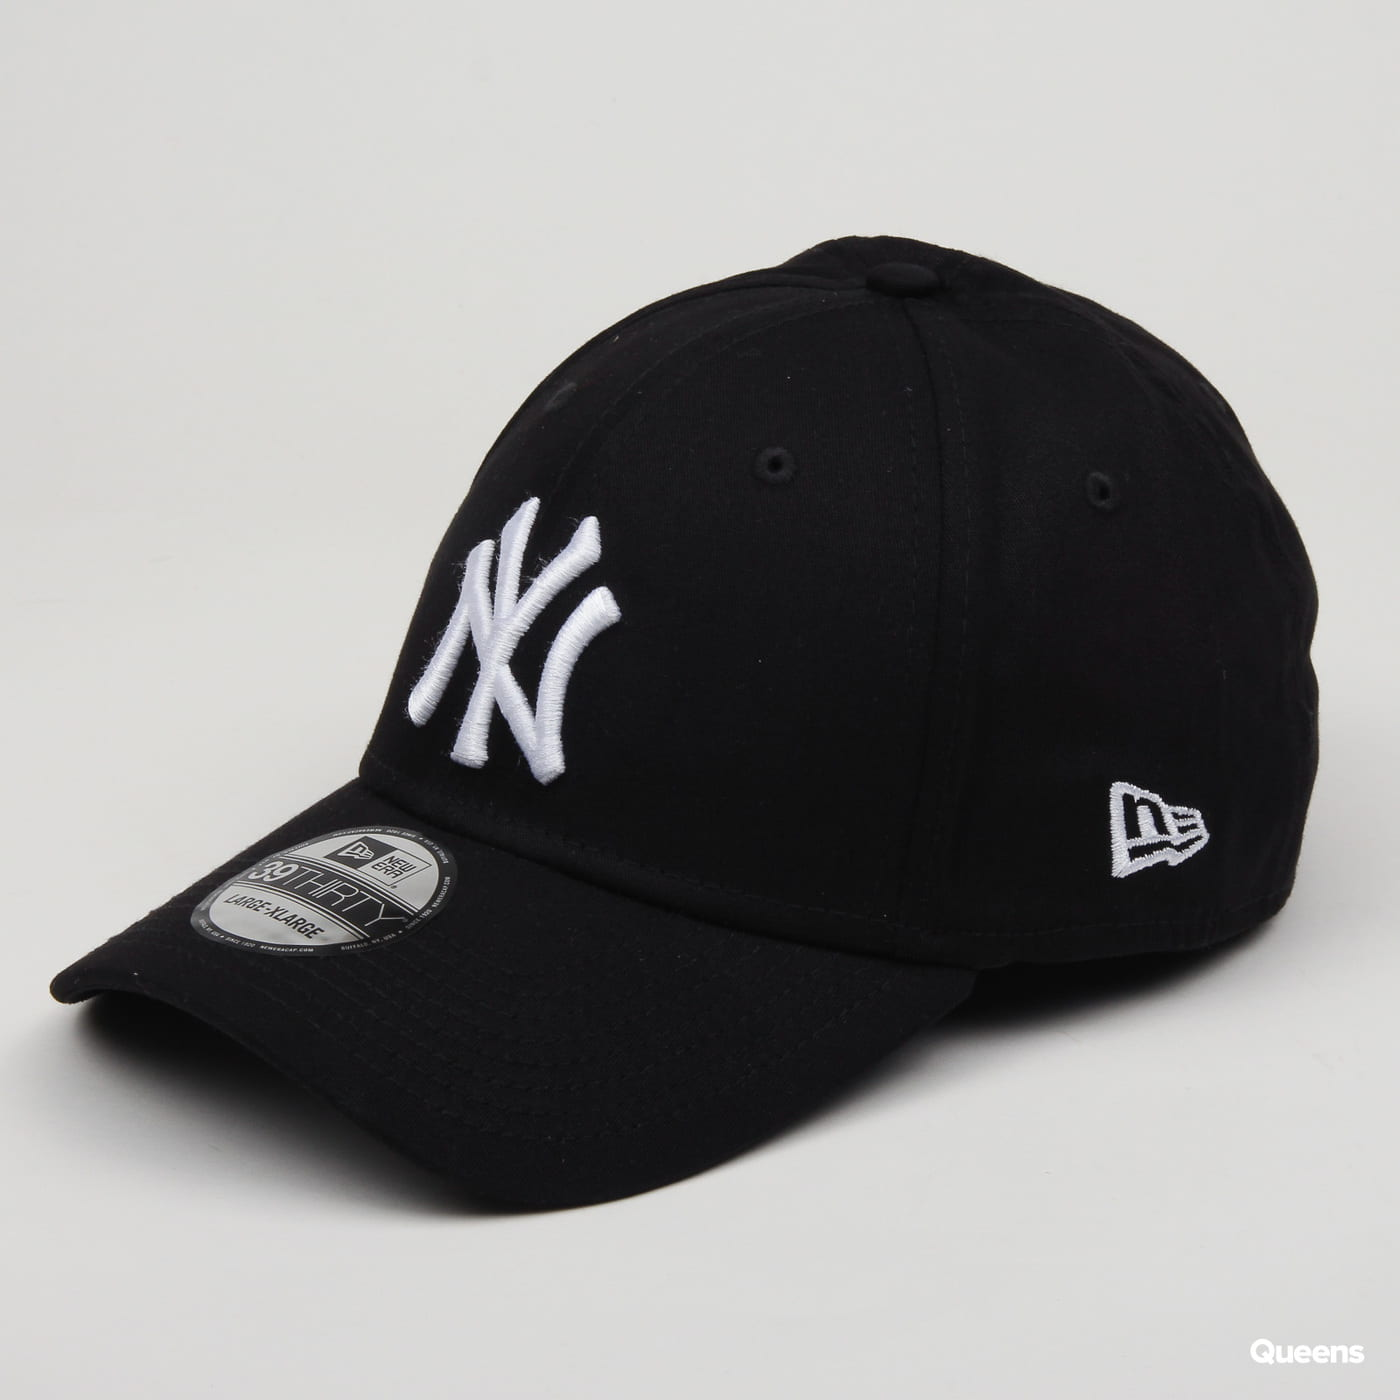 New Era MLB League Basic NY C/O black / white